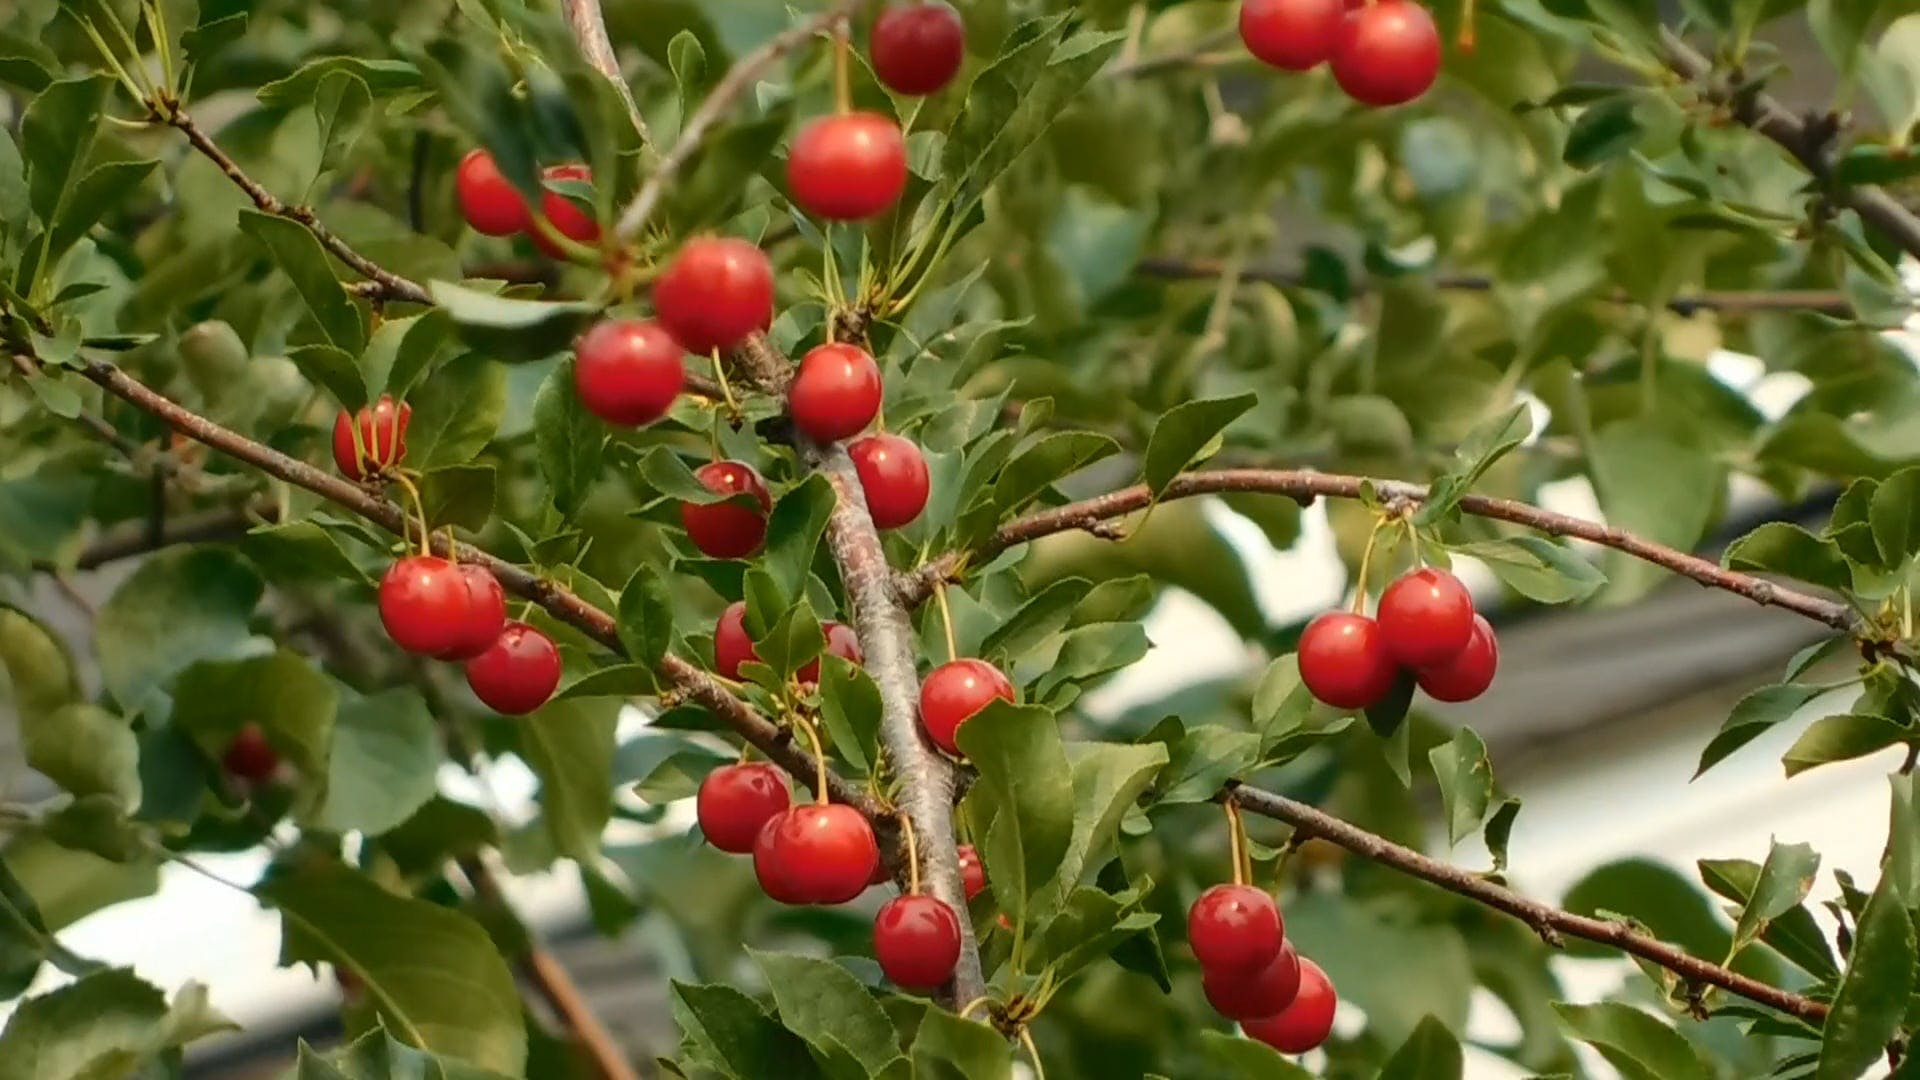 Red Cherries Hanging On The Tree